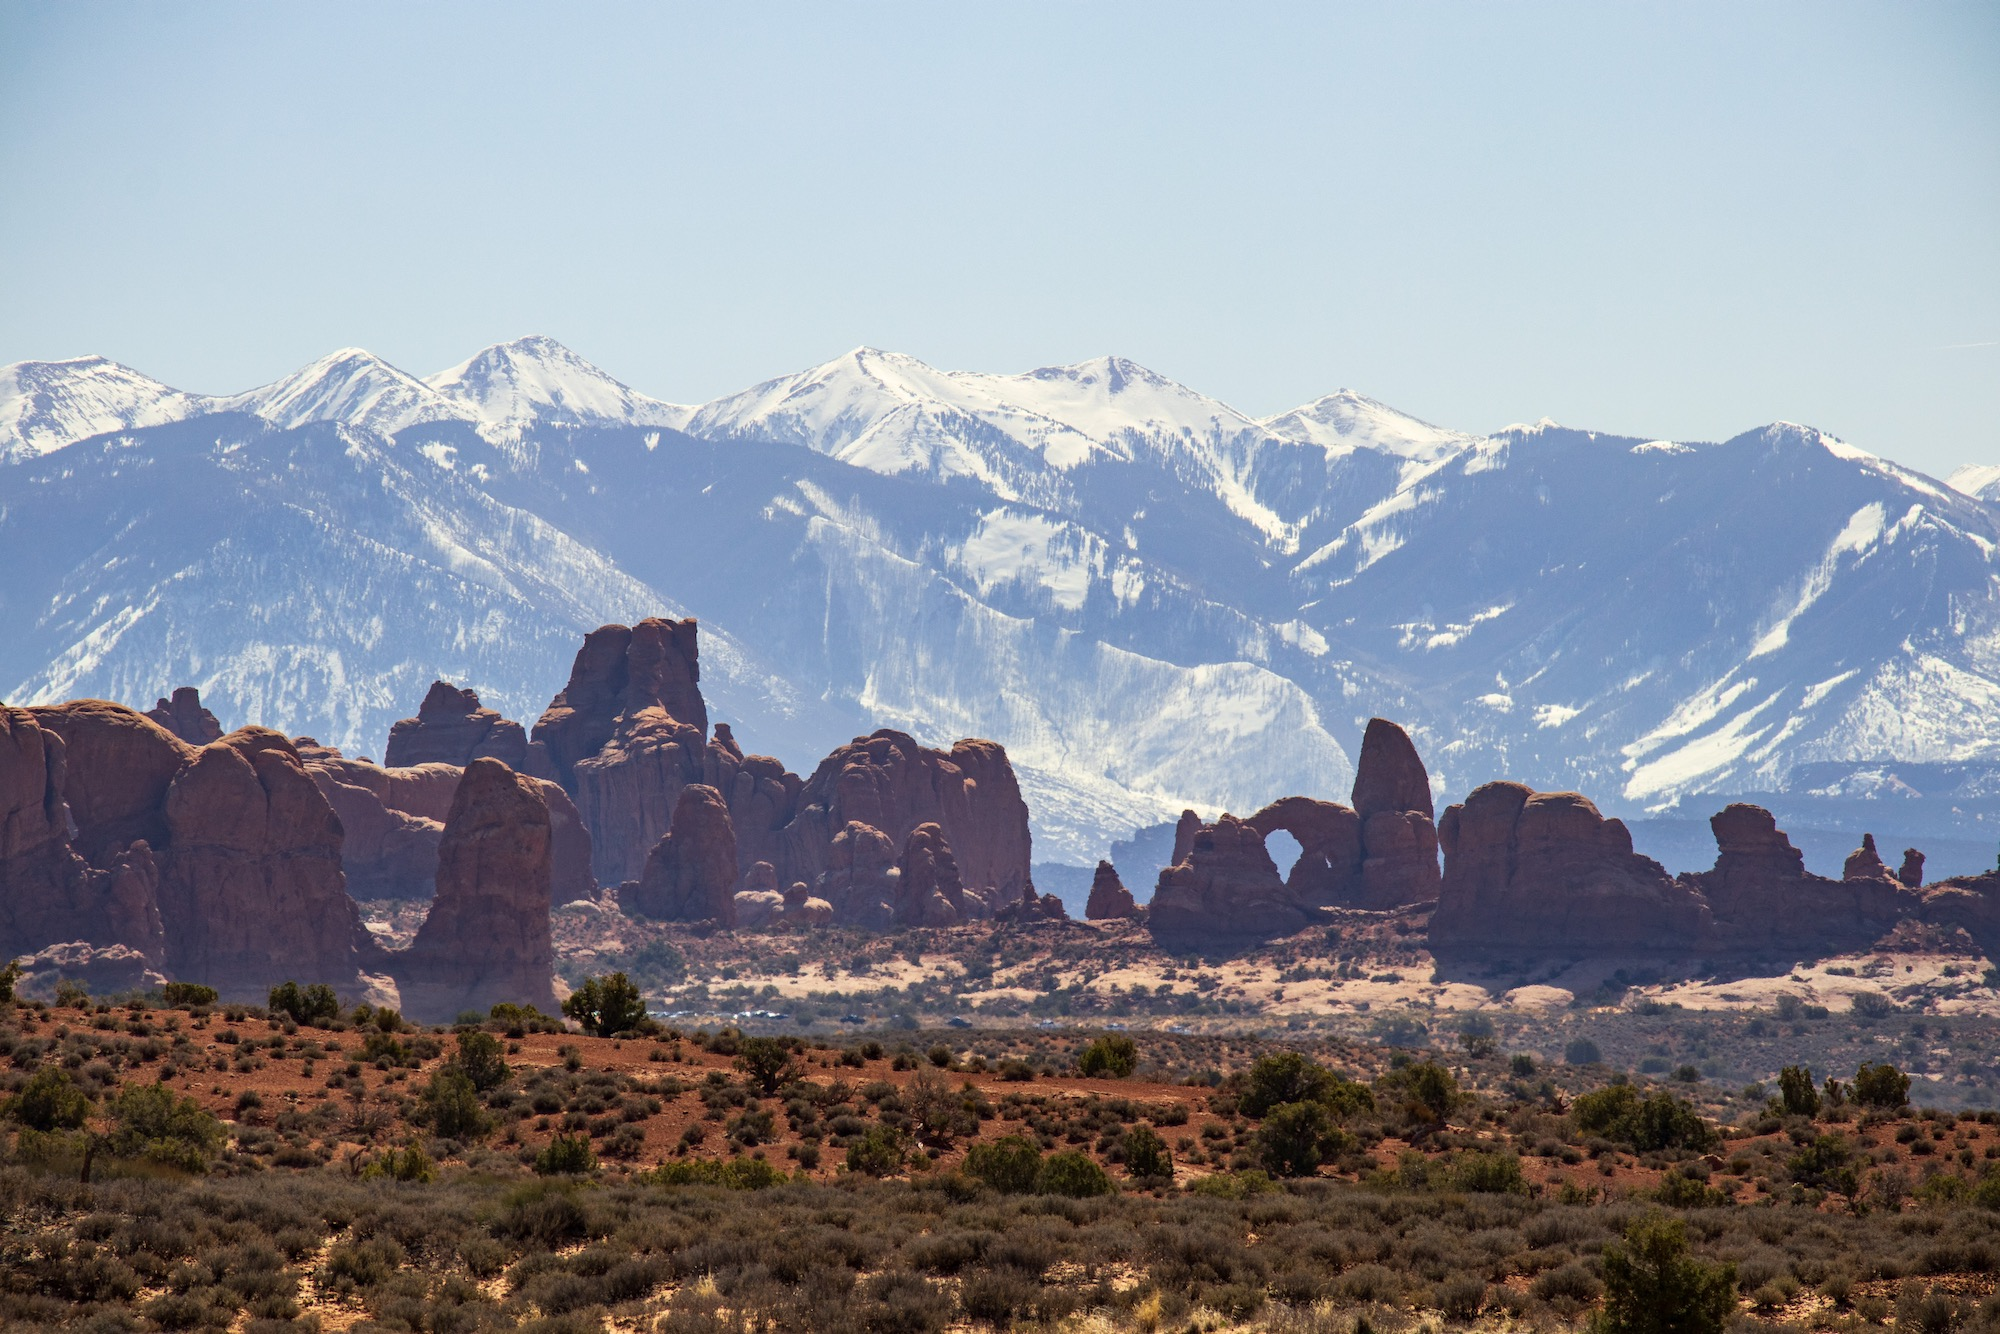 The Windows section of Arches viewed from the Balanced Rock area.